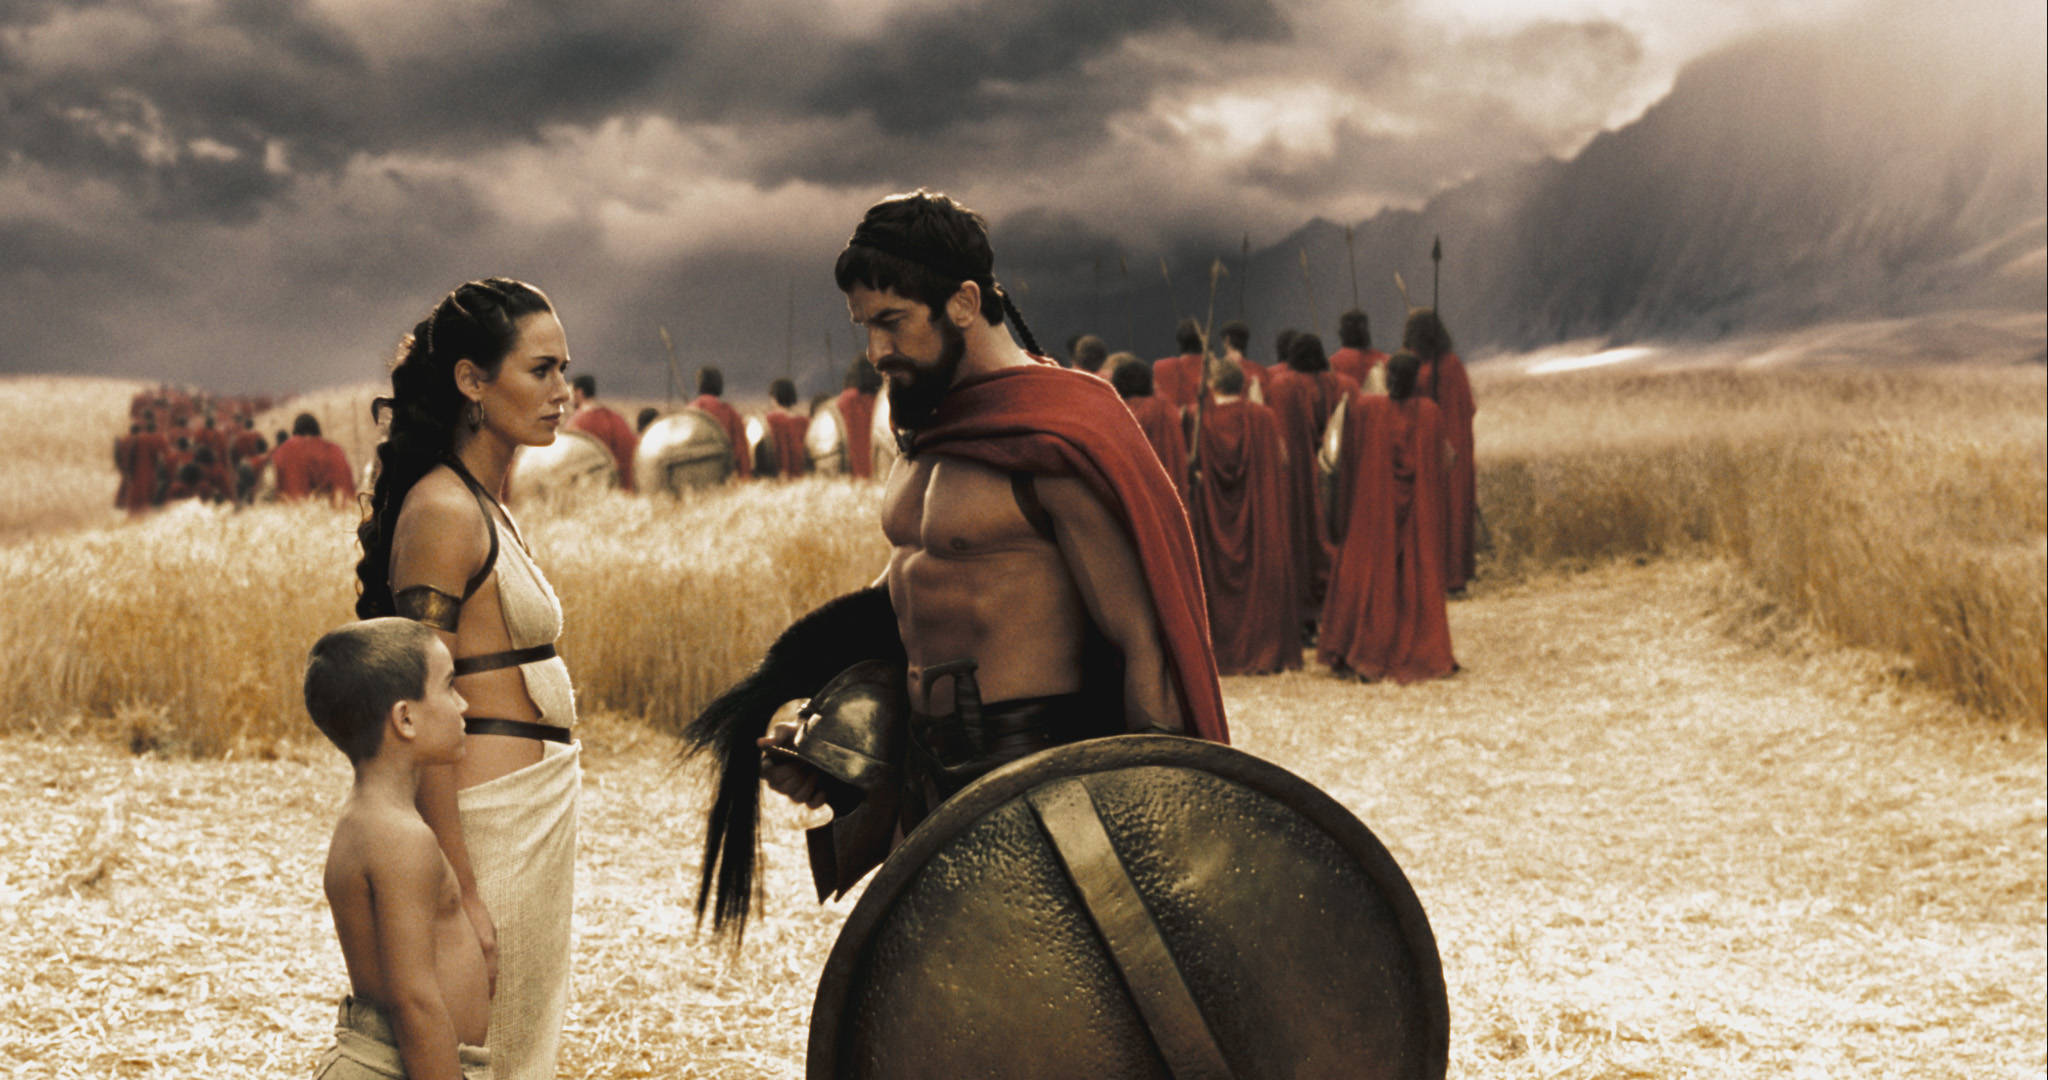 """Leonidas (GERARD BUTLER) bids farewell to his son Pleistarchos (GIOVANI ANTONIO CIMMINO) and wife Gorgo (LENA HEADEY) as the 300 begin their march north in Warner Bros. Pictures', Legendary Pictures' and Virtual Studios' action drama """"300,"""" distributed by Warner Bros. Pictures. PHOTOGRAPHS TO BE USED SOLELY FOR ADVERTISING, PROMOTION, PUBLICITY OR REVIEWS OF THIS SPECIFIC MOTION PICTURE AND TO REMAIN THE PROPERTY OF THE STUDIO. NOT FOR SALE OR REDISTRIBUTION"""